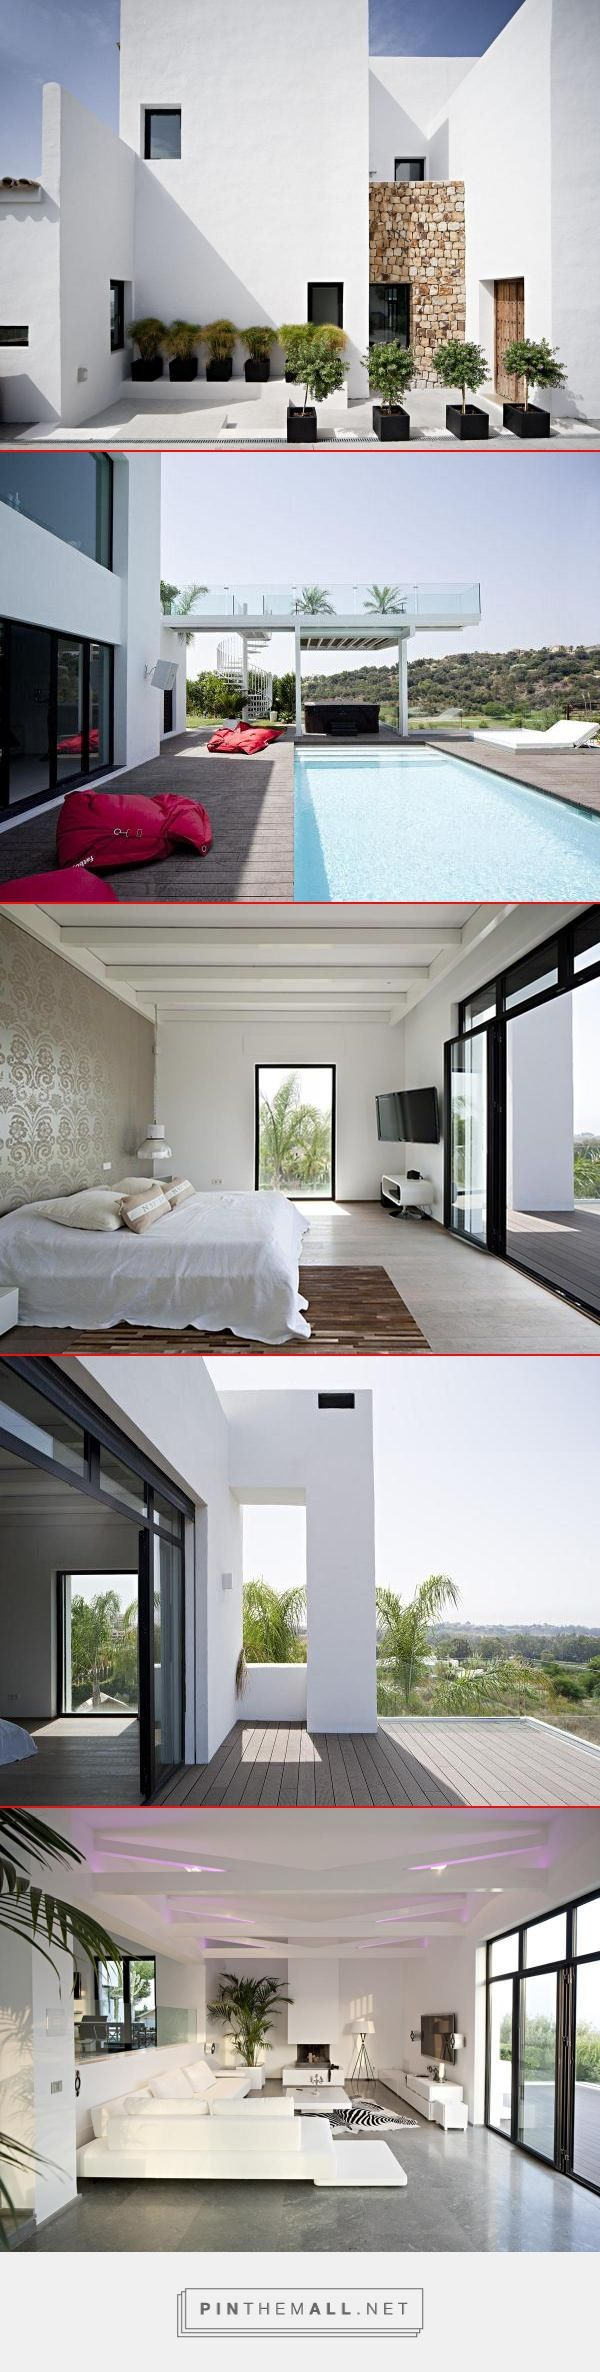 Outstanding architecture with an unique interior design produces a masterpiece…